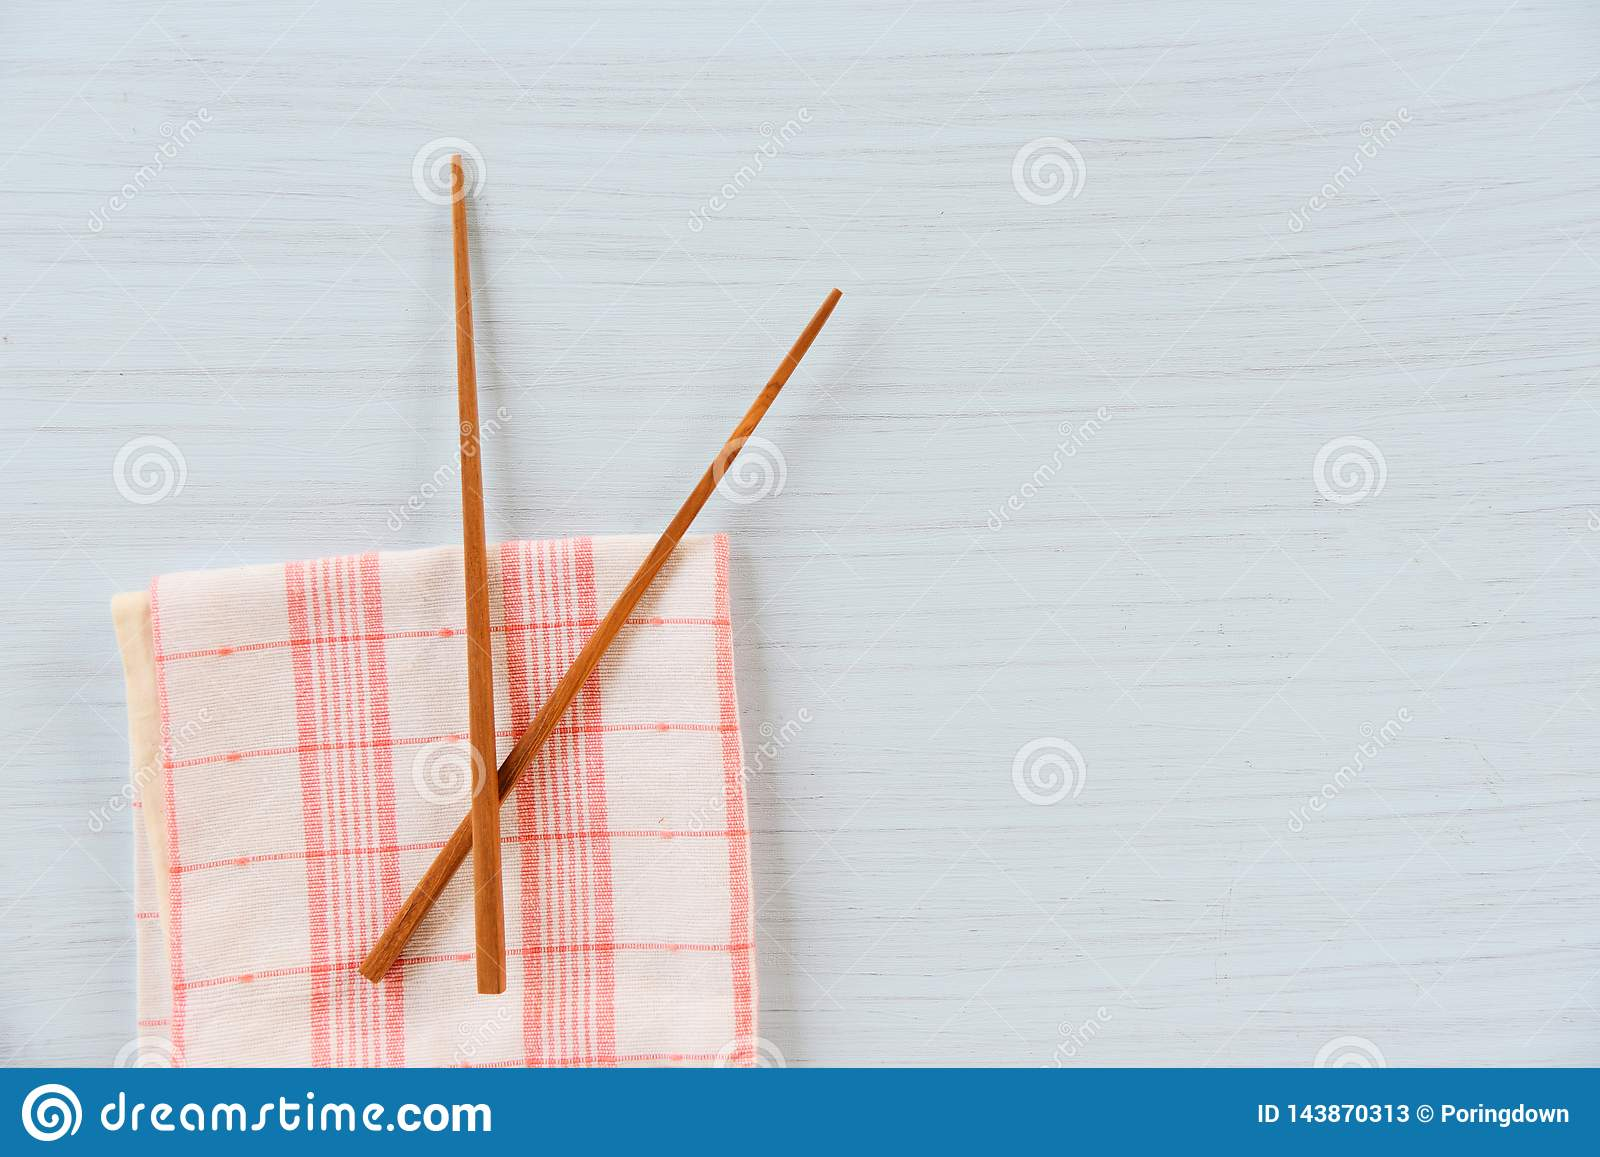 Wooden chopsticks kitchenware set on napery on dining table / Zero waste use less plastic concept